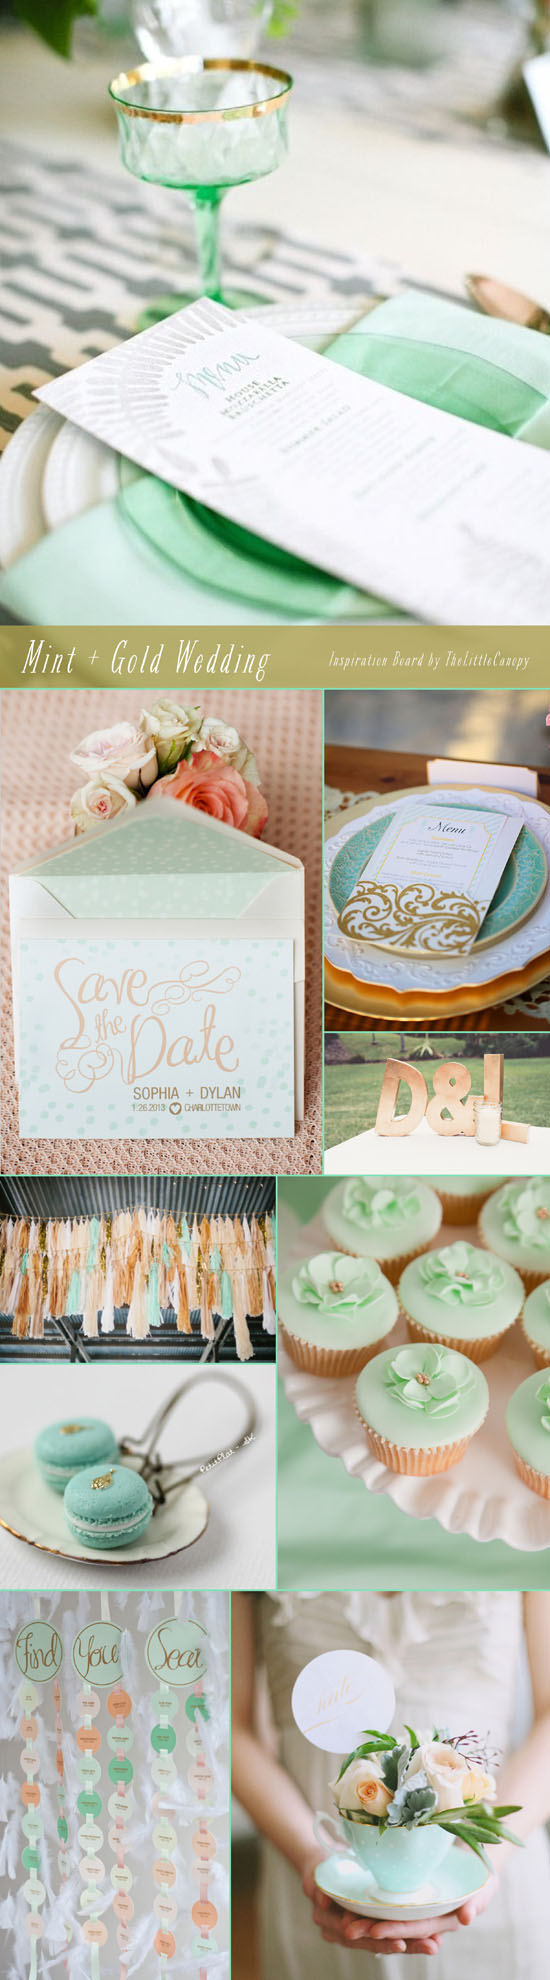 How refreshing are these colors? So many ways to play with mint and gold to create a dream wedding! Love the big gold block letters! Enjoy!